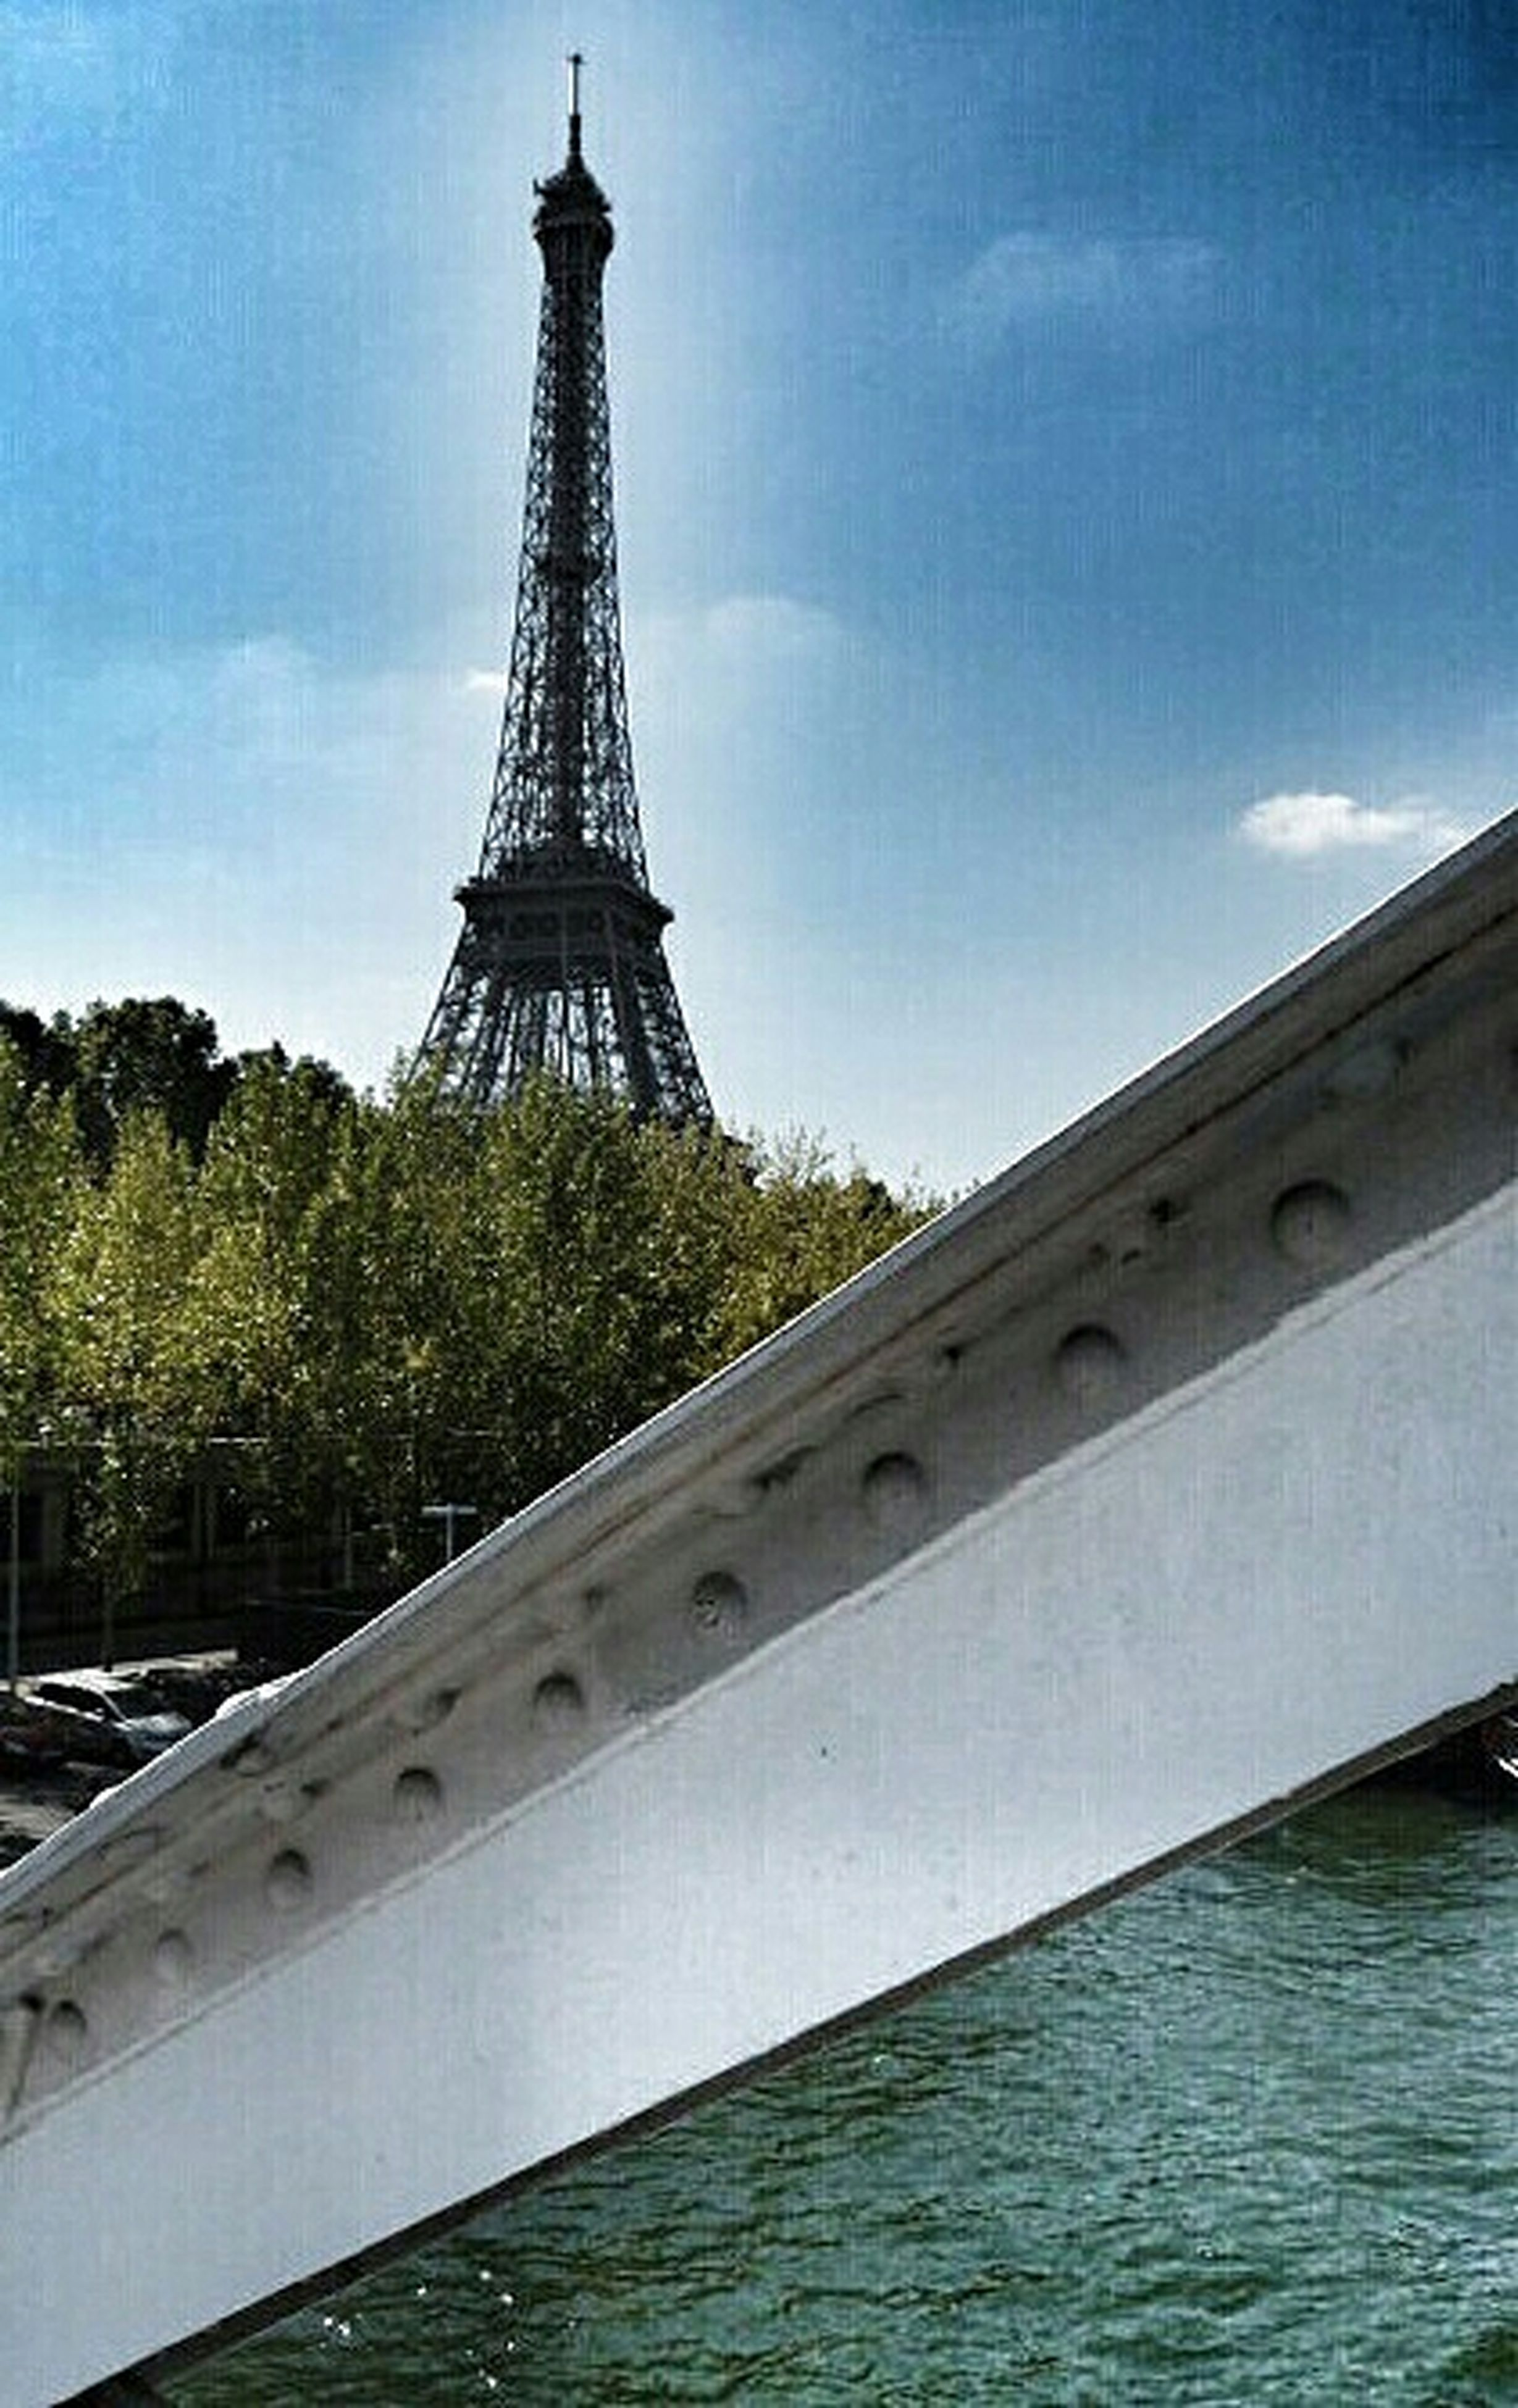 built structure, architecture, eiffel tower, tower, low angle view, international landmark, famous place, tall - high, travel destinations, sky, culture, capital cities, building exterior, travel, tourism, history, water, tree, metal, river